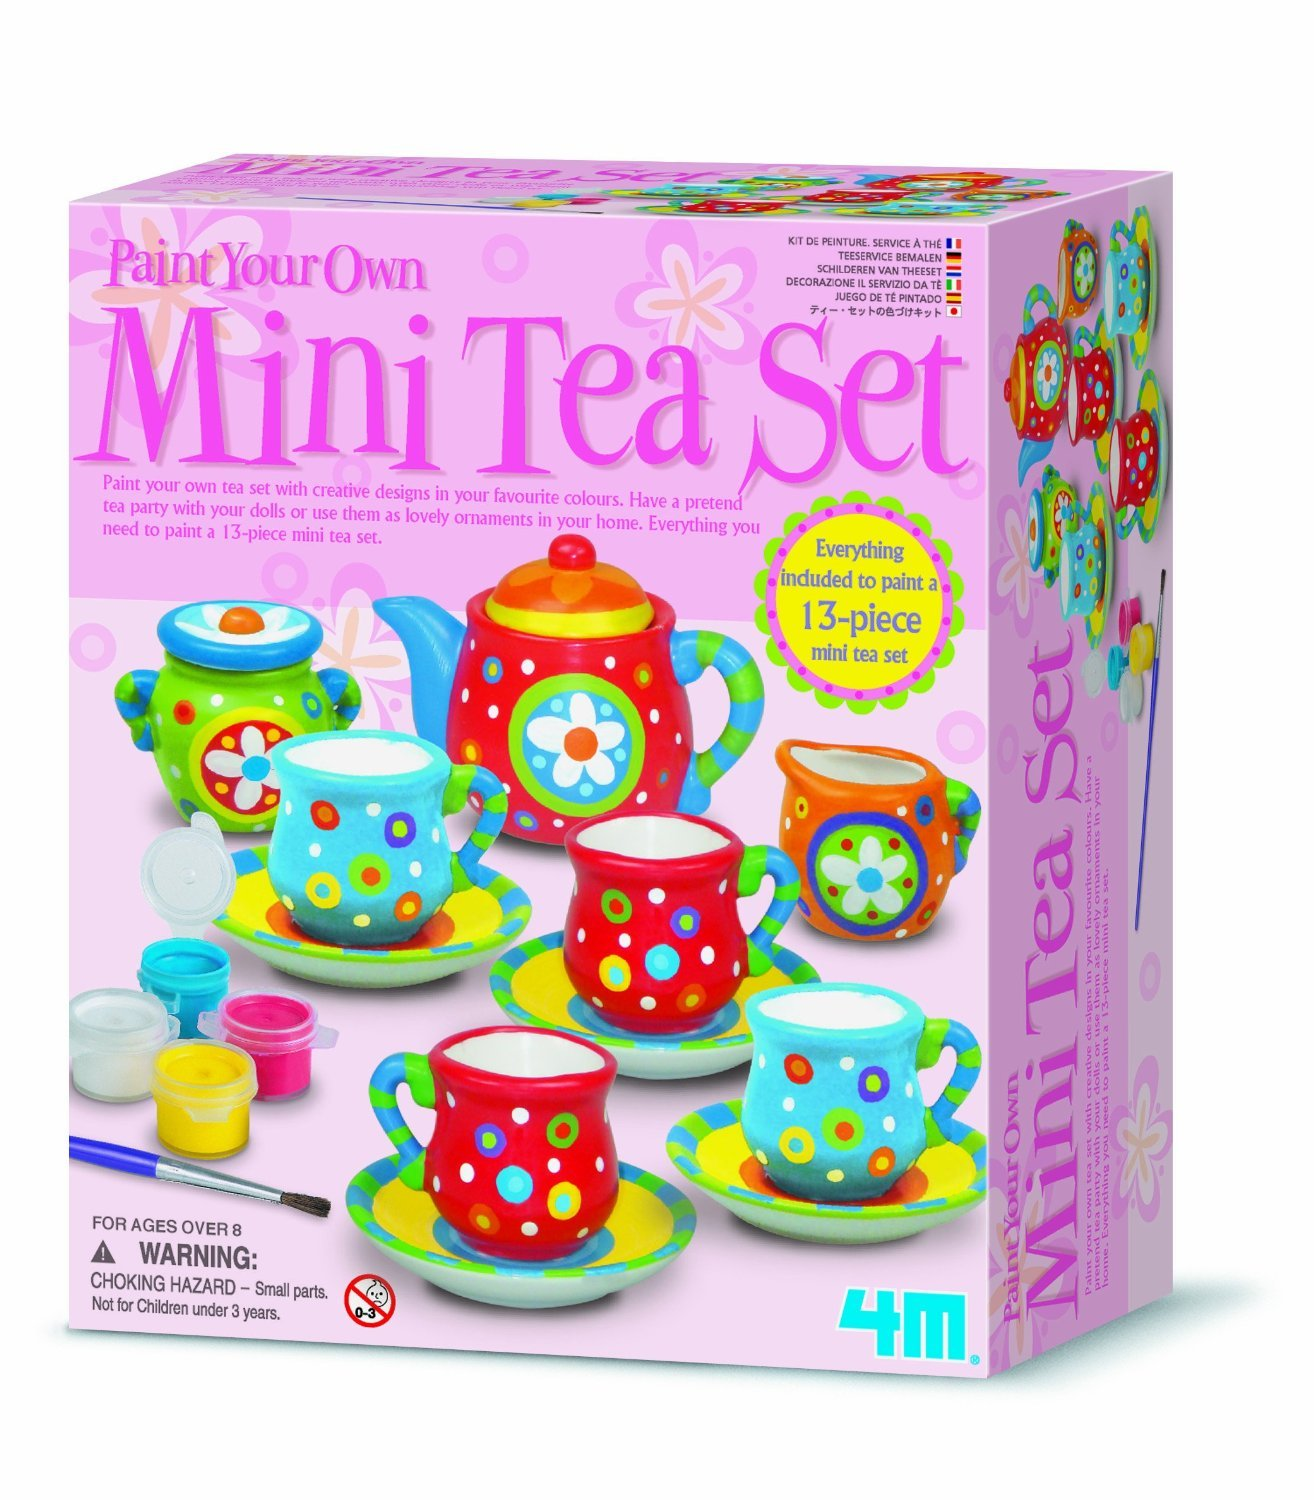 ARTS & CRAFTS Design Your Own Tea Set Painting - Painting Kit - Number 1 Creative Toys & Games Present Gift Ideal For Christmas Xmas Stocking Fillers Age 8+ Girls Girl Child Kids Children